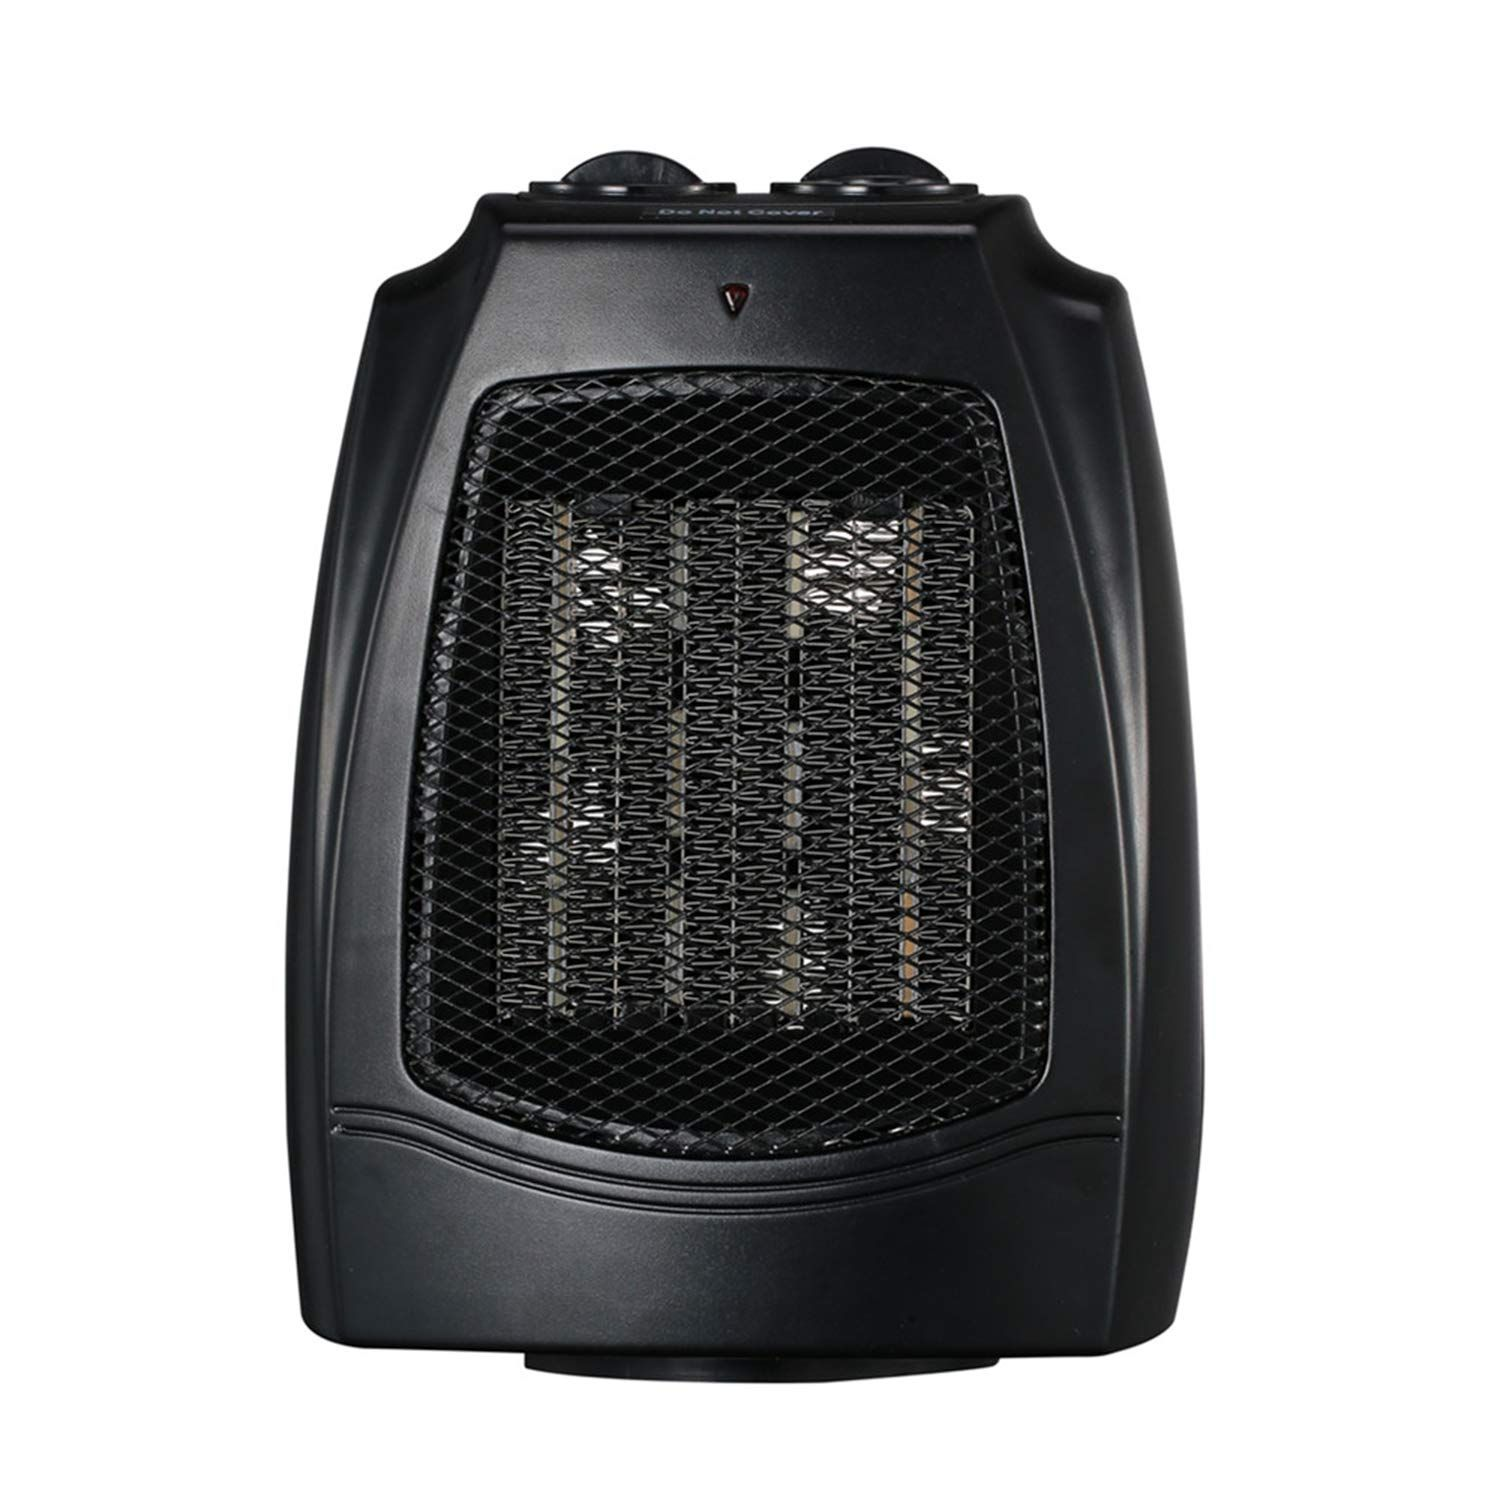 Portable Ceramic Space Heater 1500W Electric Heater with